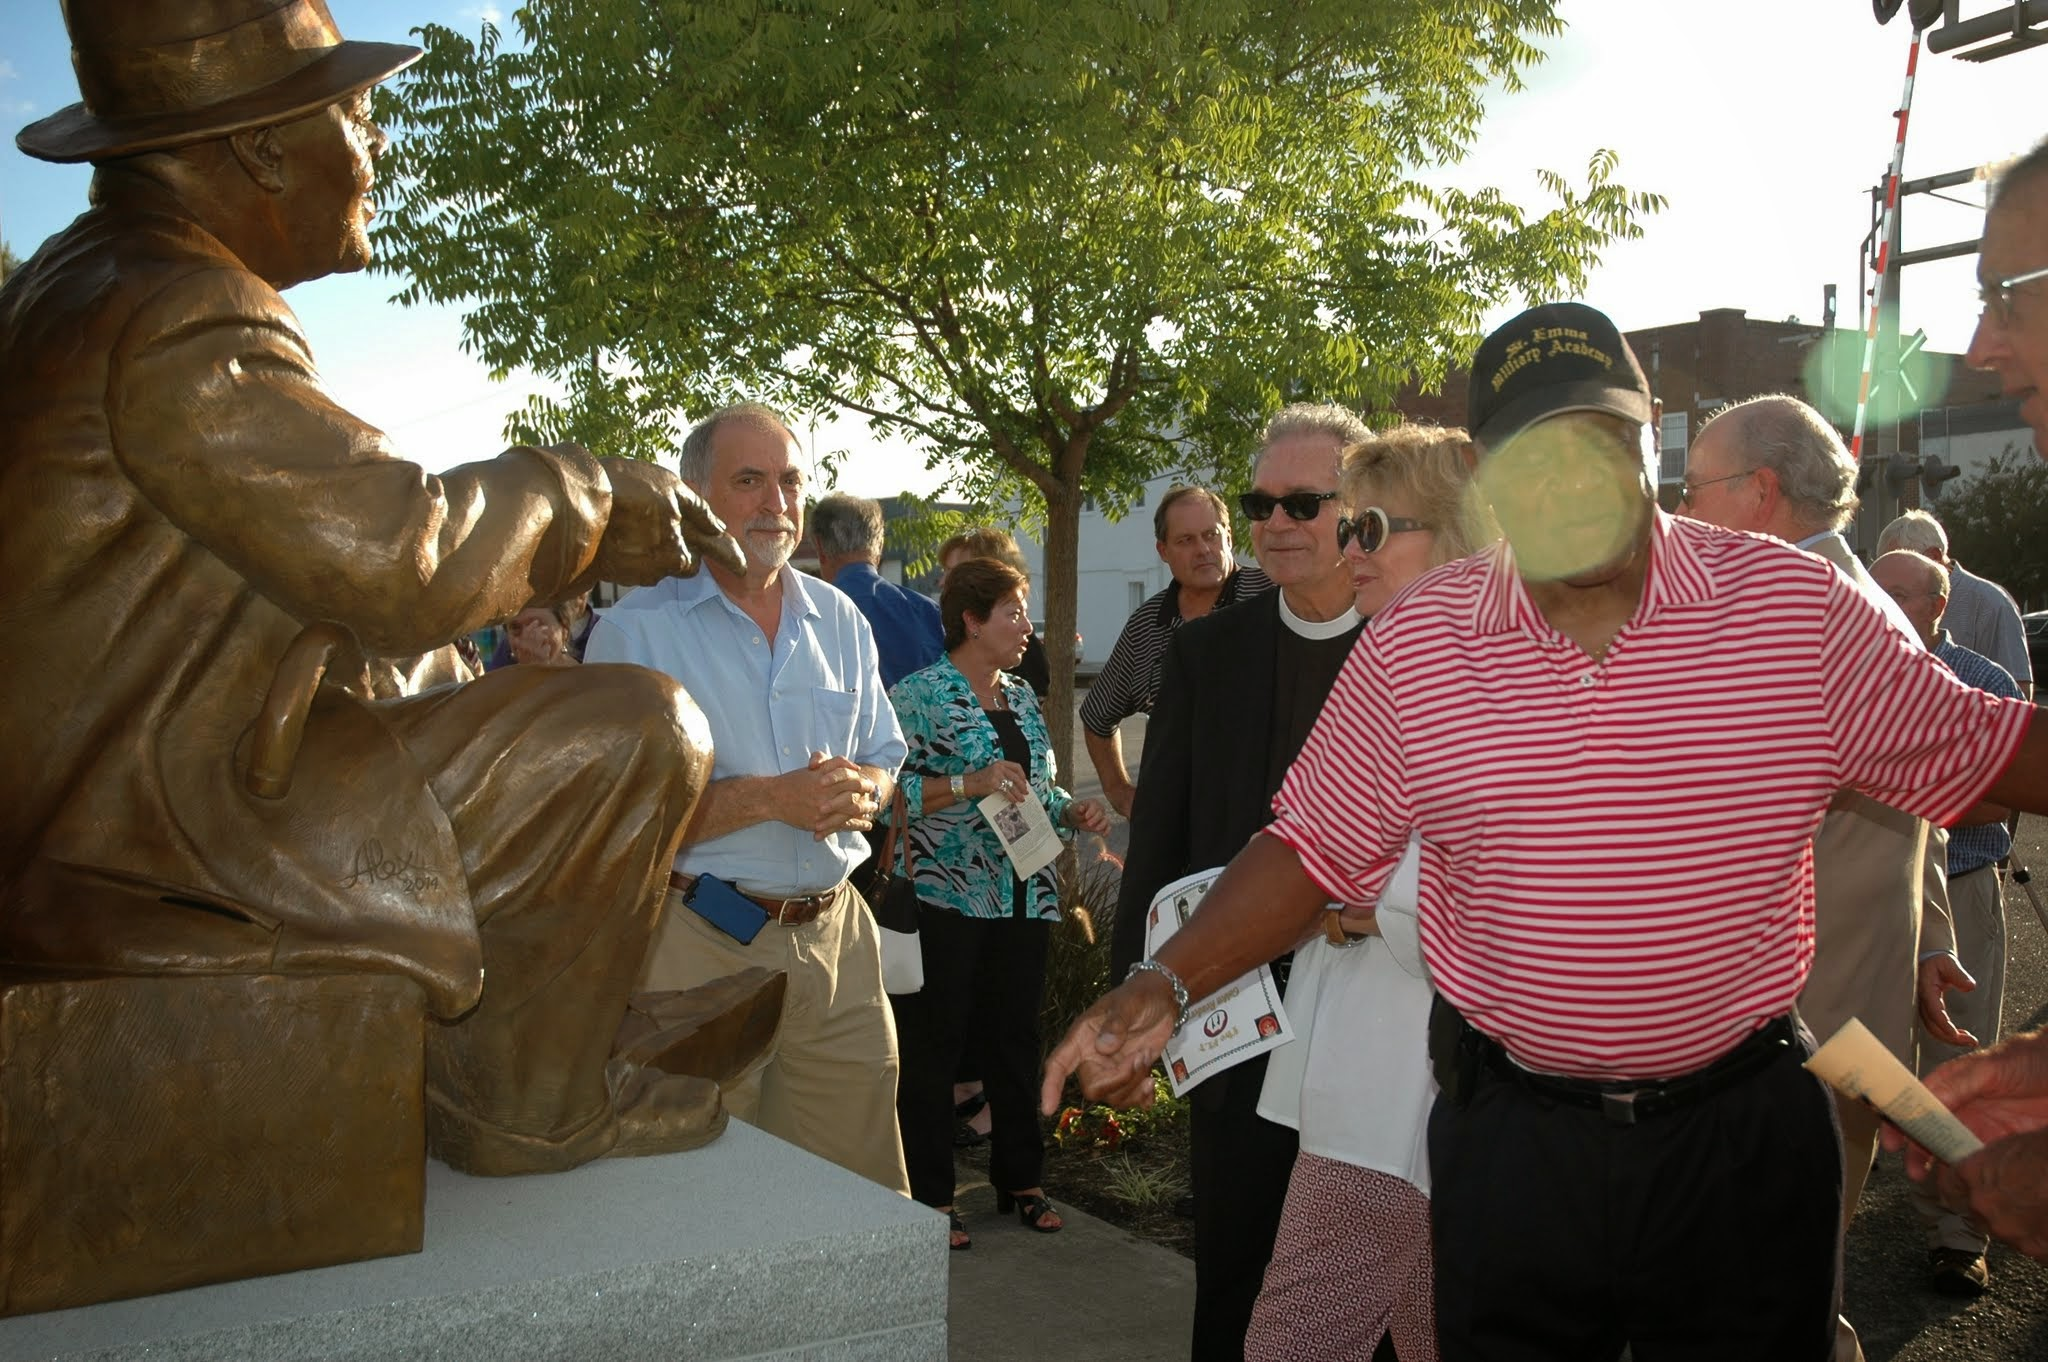 People gathering around the sculpture.